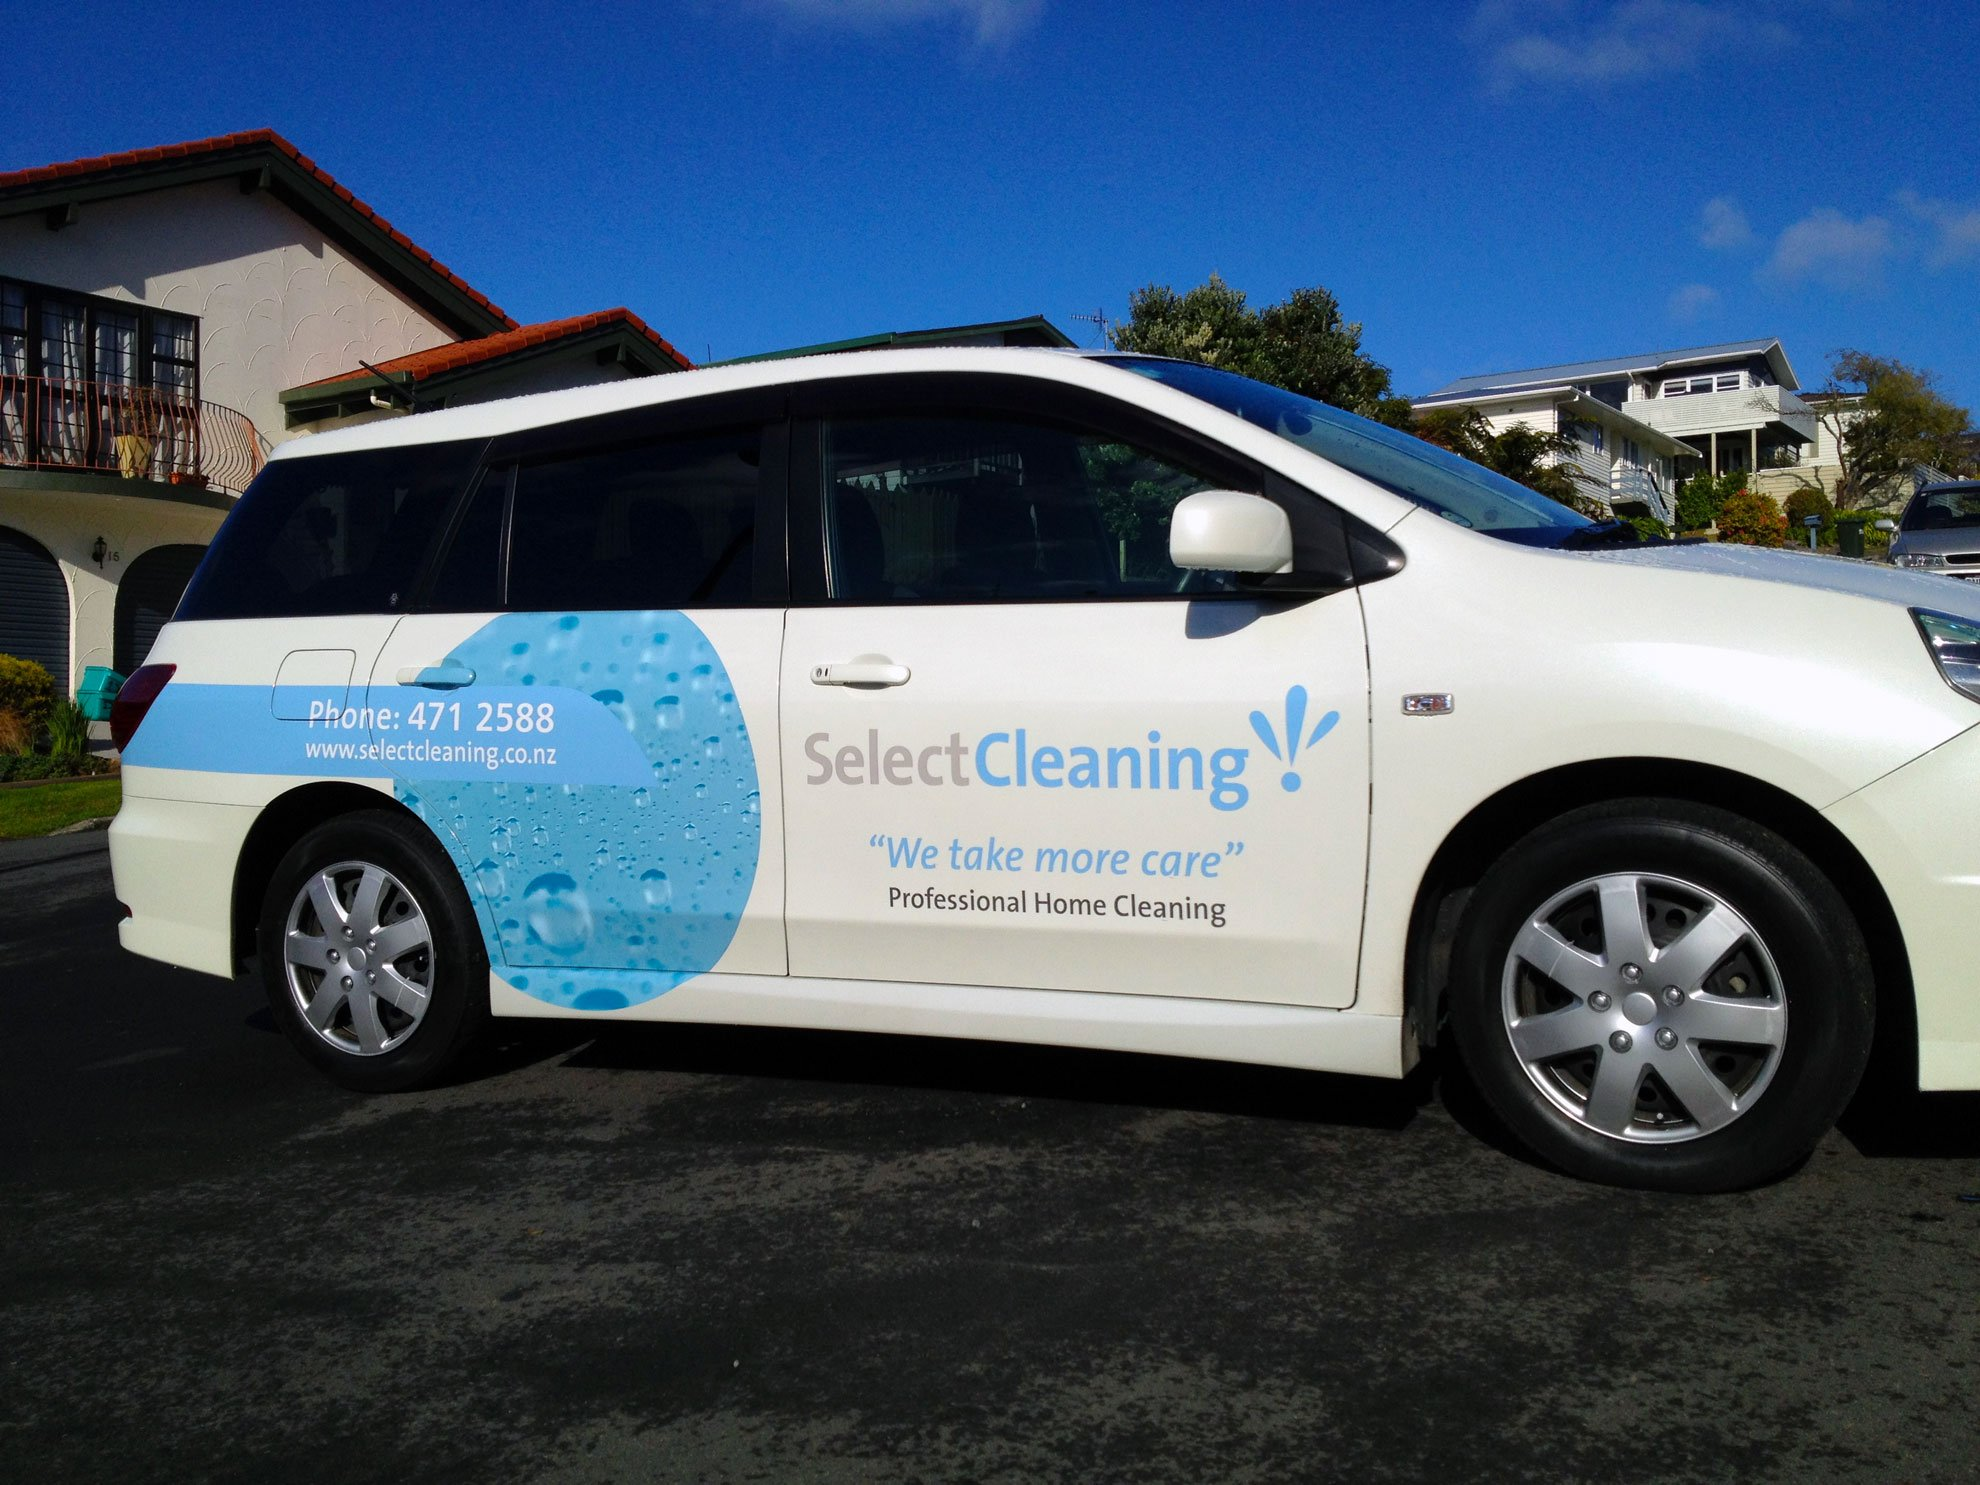 Digitally printed high performance vinyls applied to car